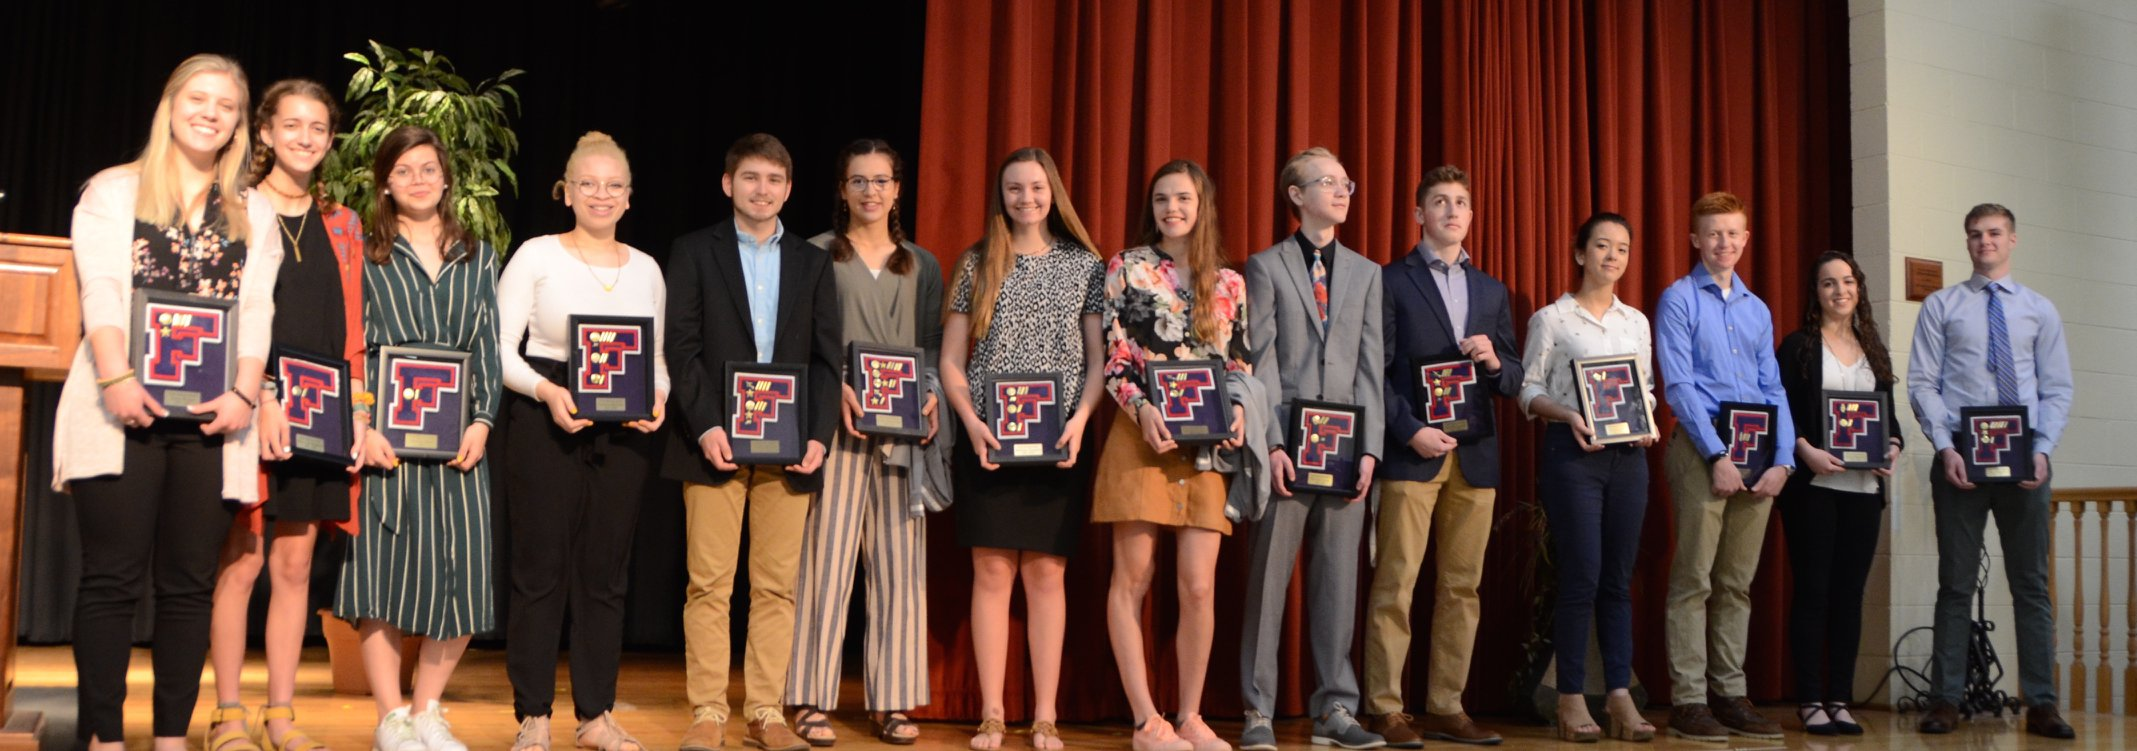 Senior Athletic Awards